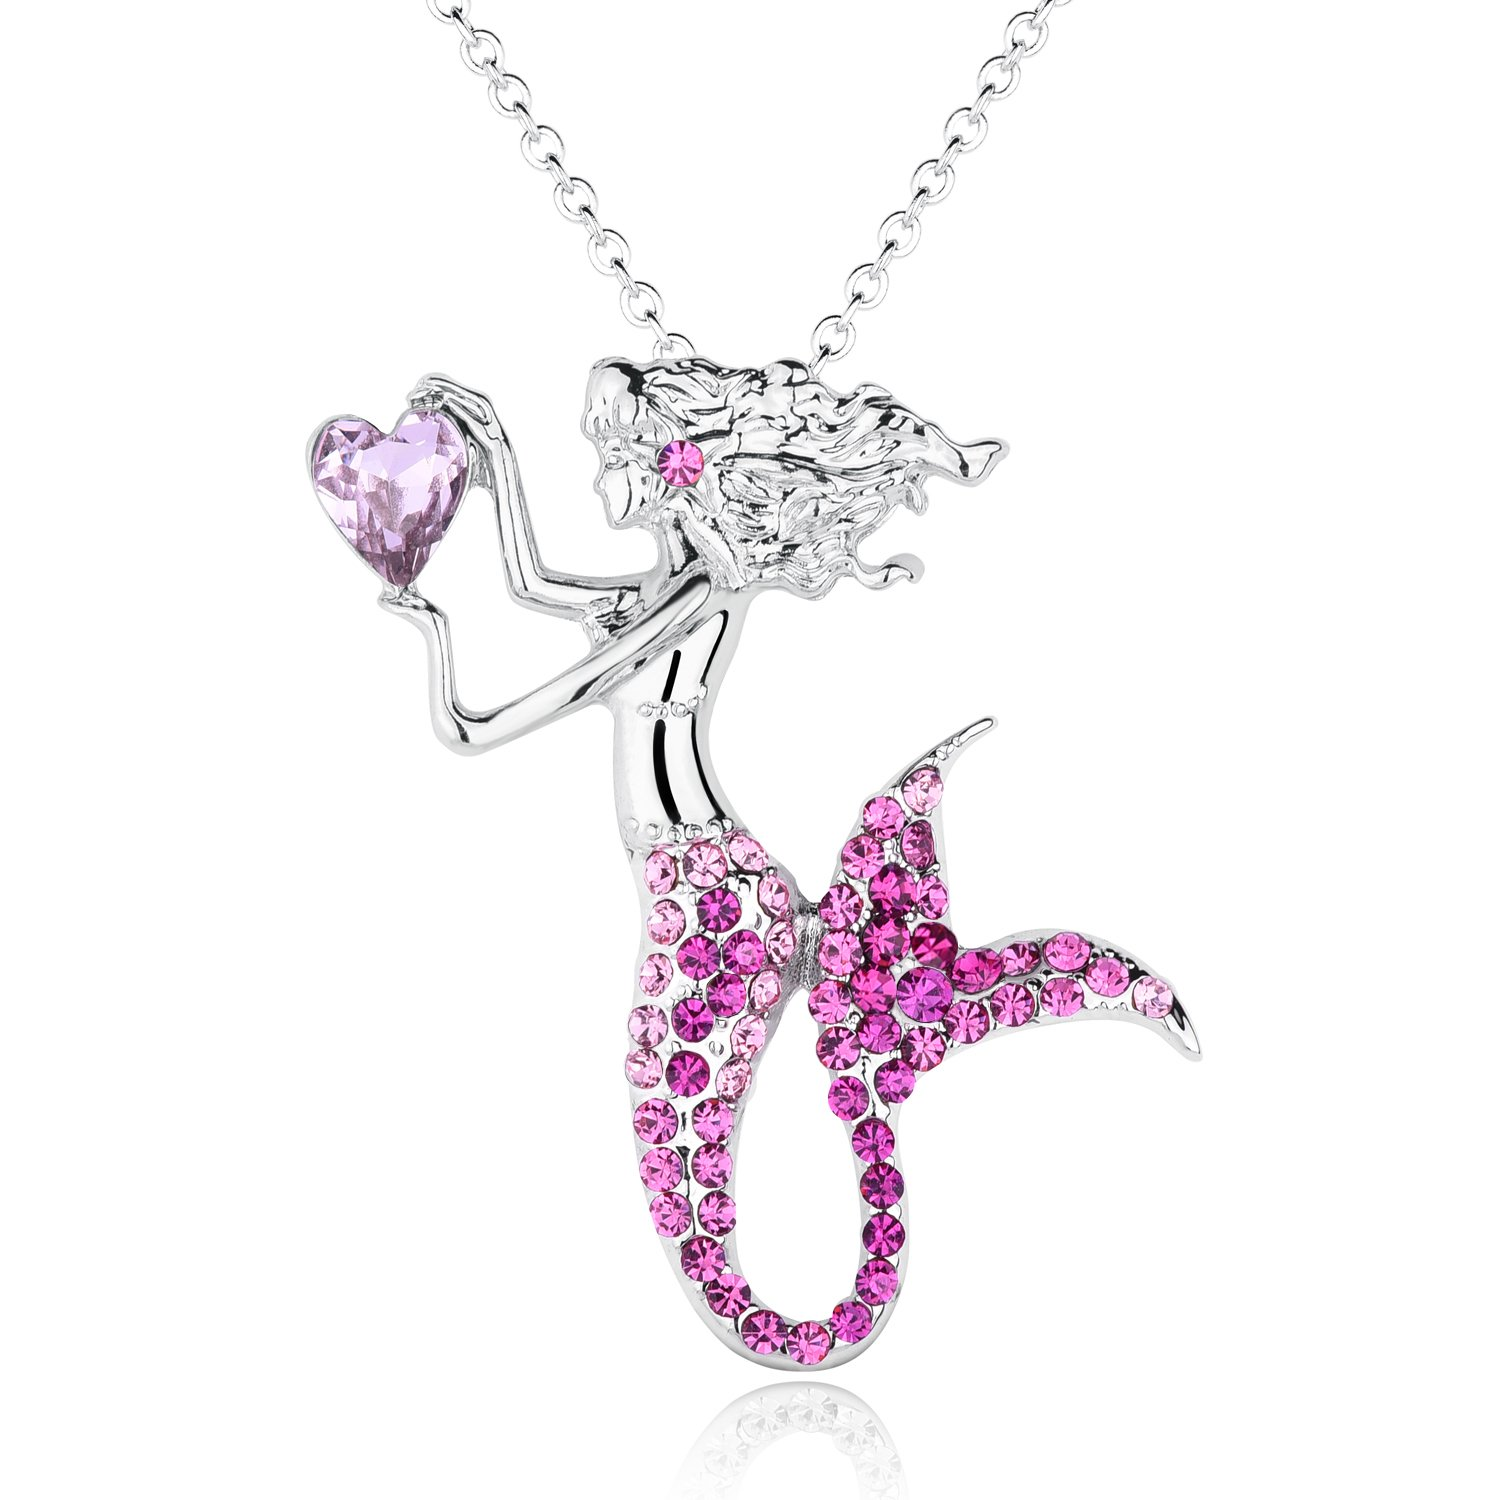 luomart Fashion Mermaid Birthstone Necklace Jewelry White Gold Plated Austrian Crystal Magic Pendant Gift (Pink)